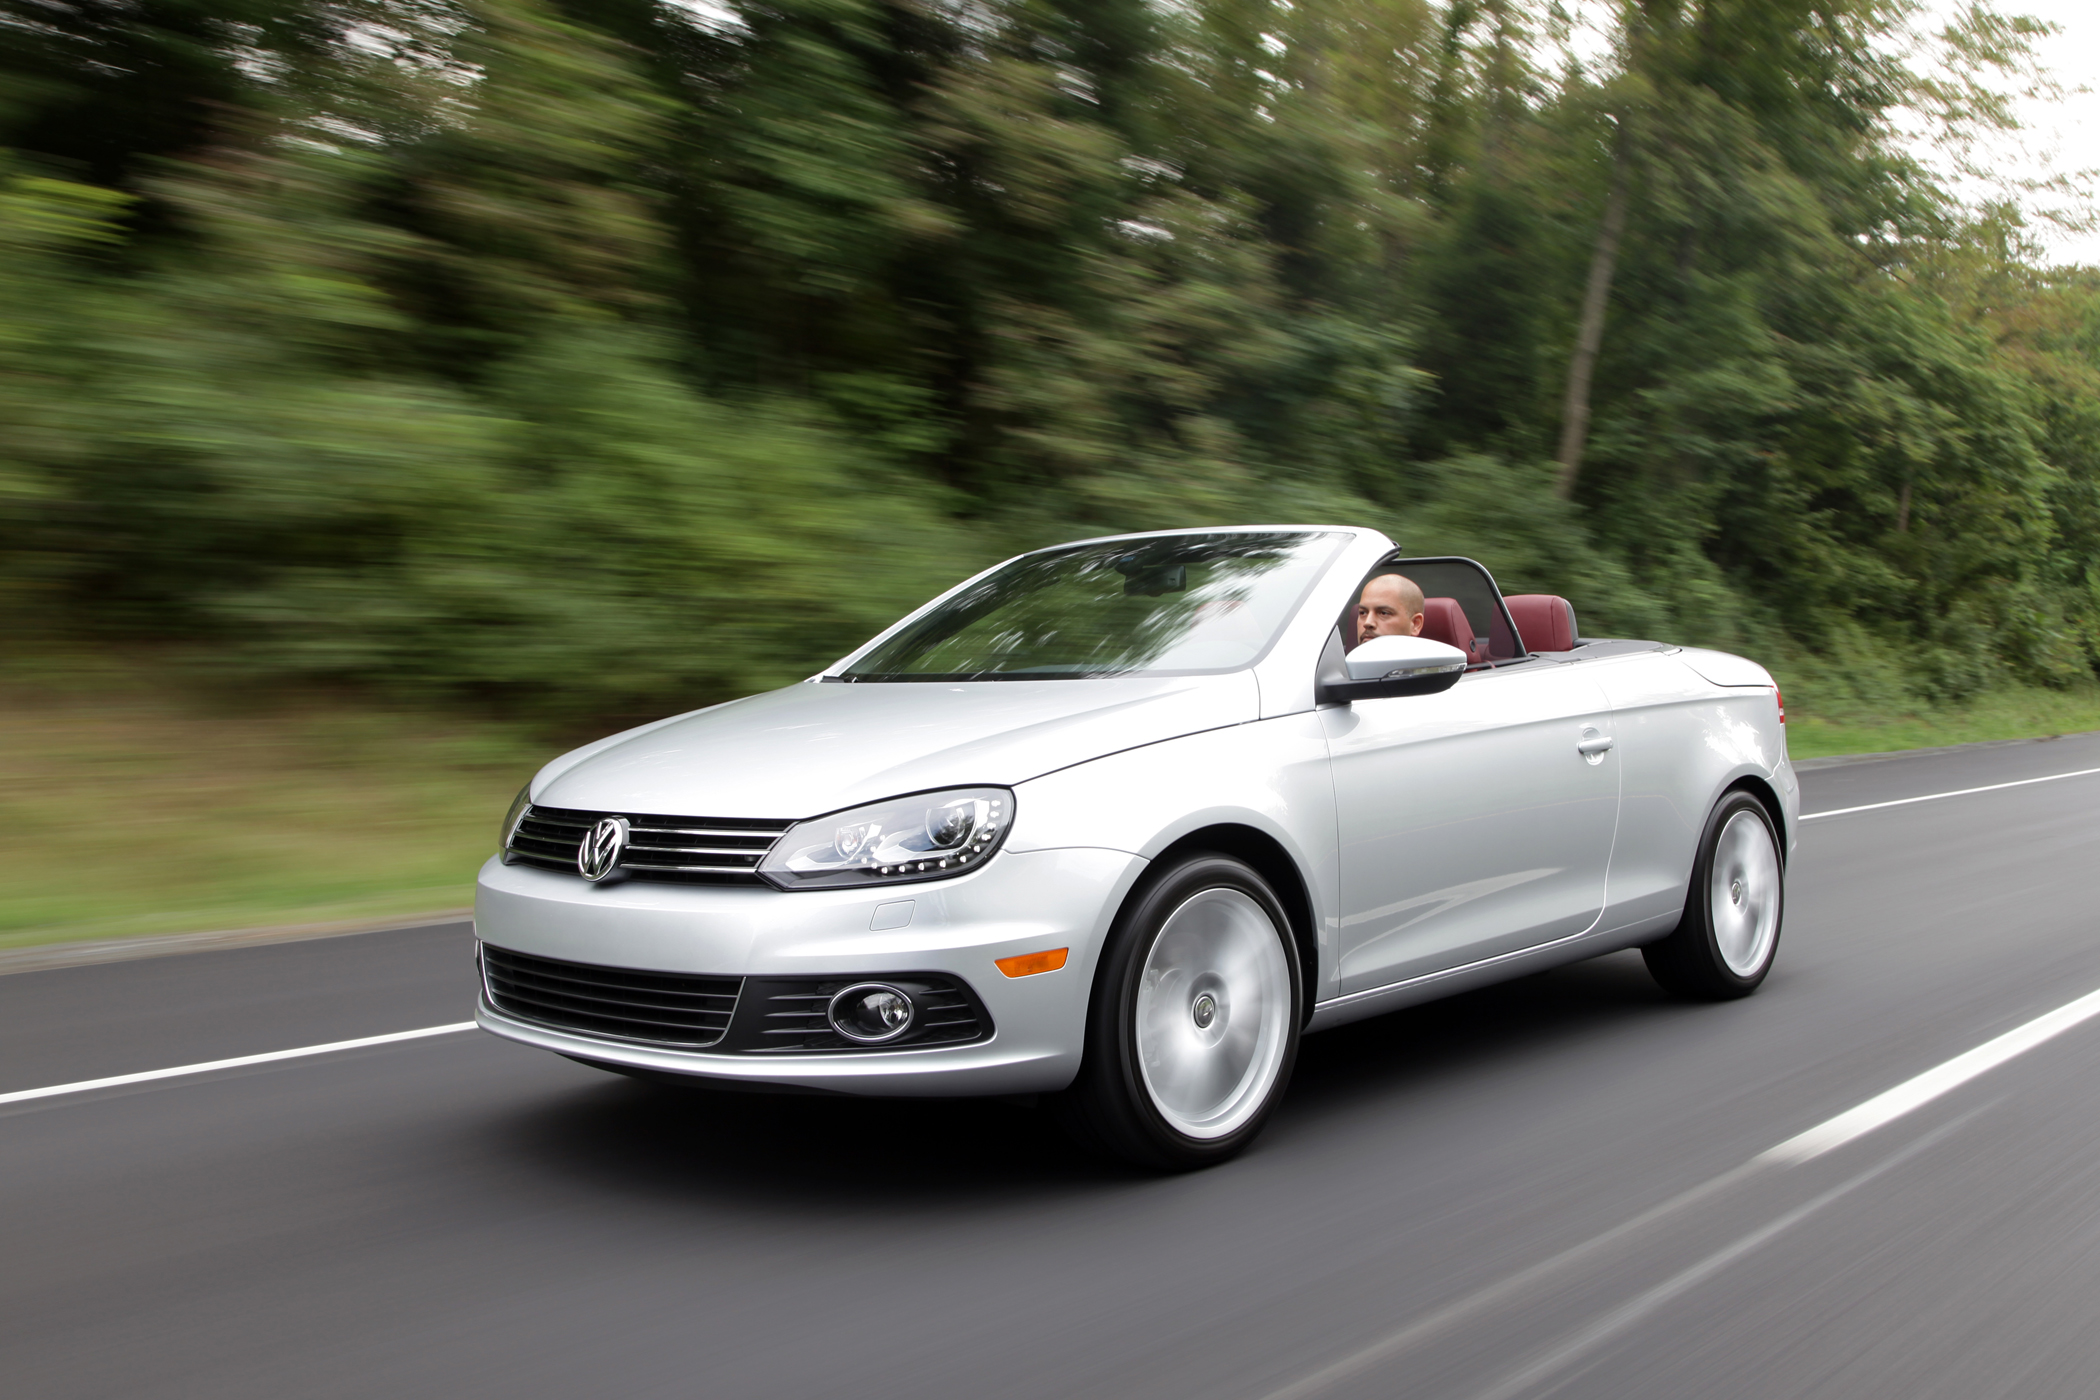 vw convertible coupe extensively revamped 2012 eos bonus wheels groovecar. Black Bedroom Furniture Sets. Home Design Ideas